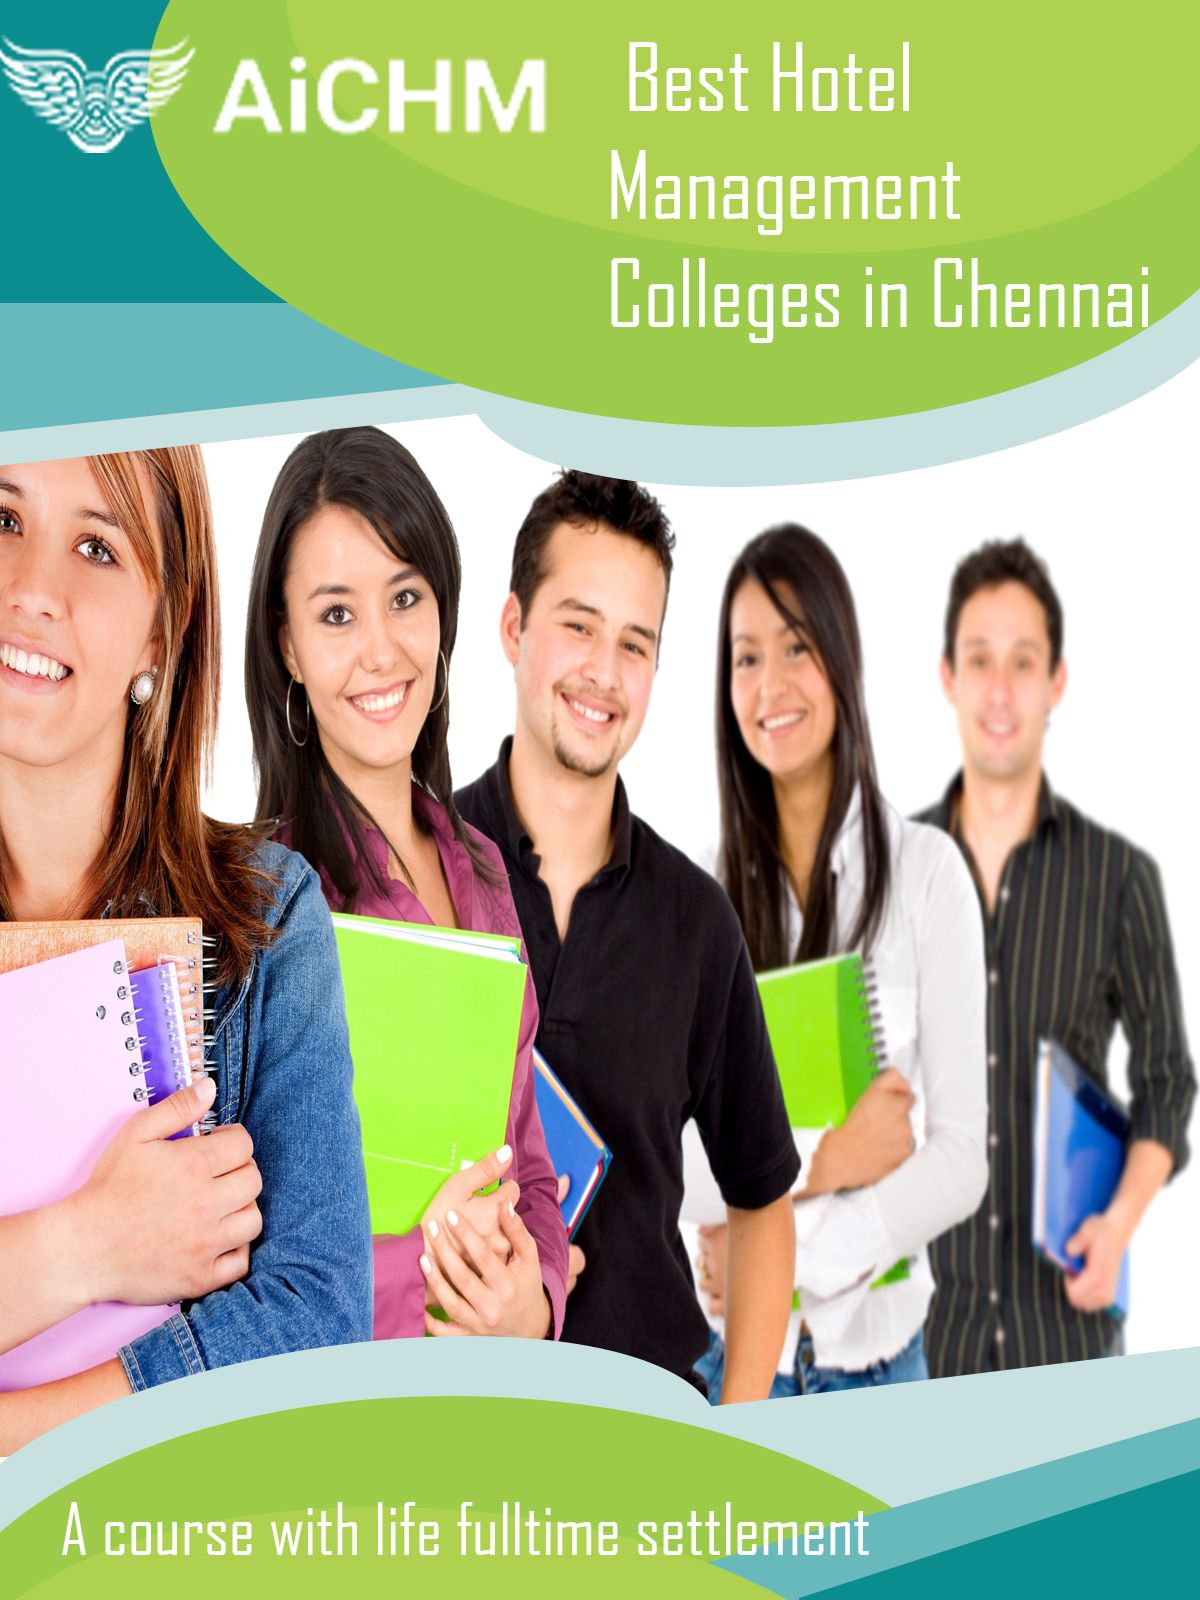 A course which gives you lifetime settlement by just having a course with us at Aimfill!!!